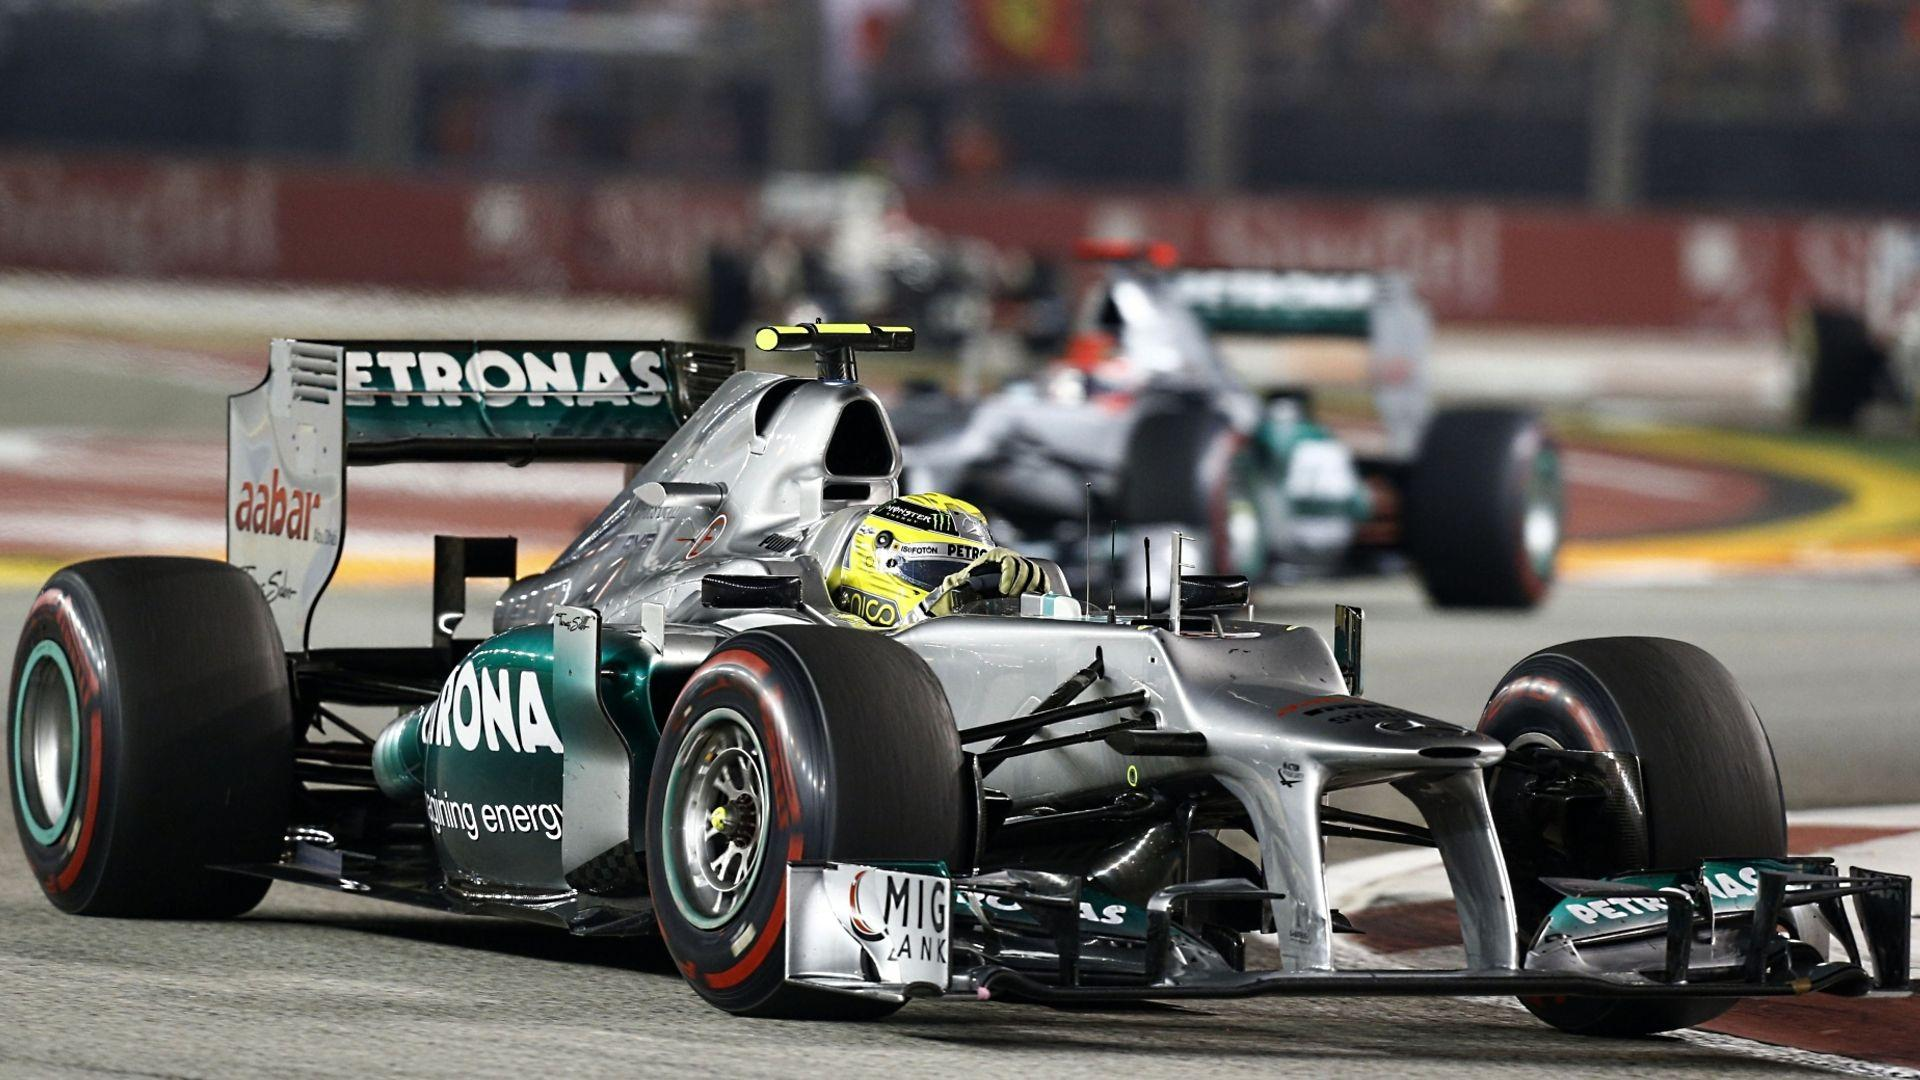 Wallpapers : 1920x1080 px, Formula 1, Mercedes AMG Petronas